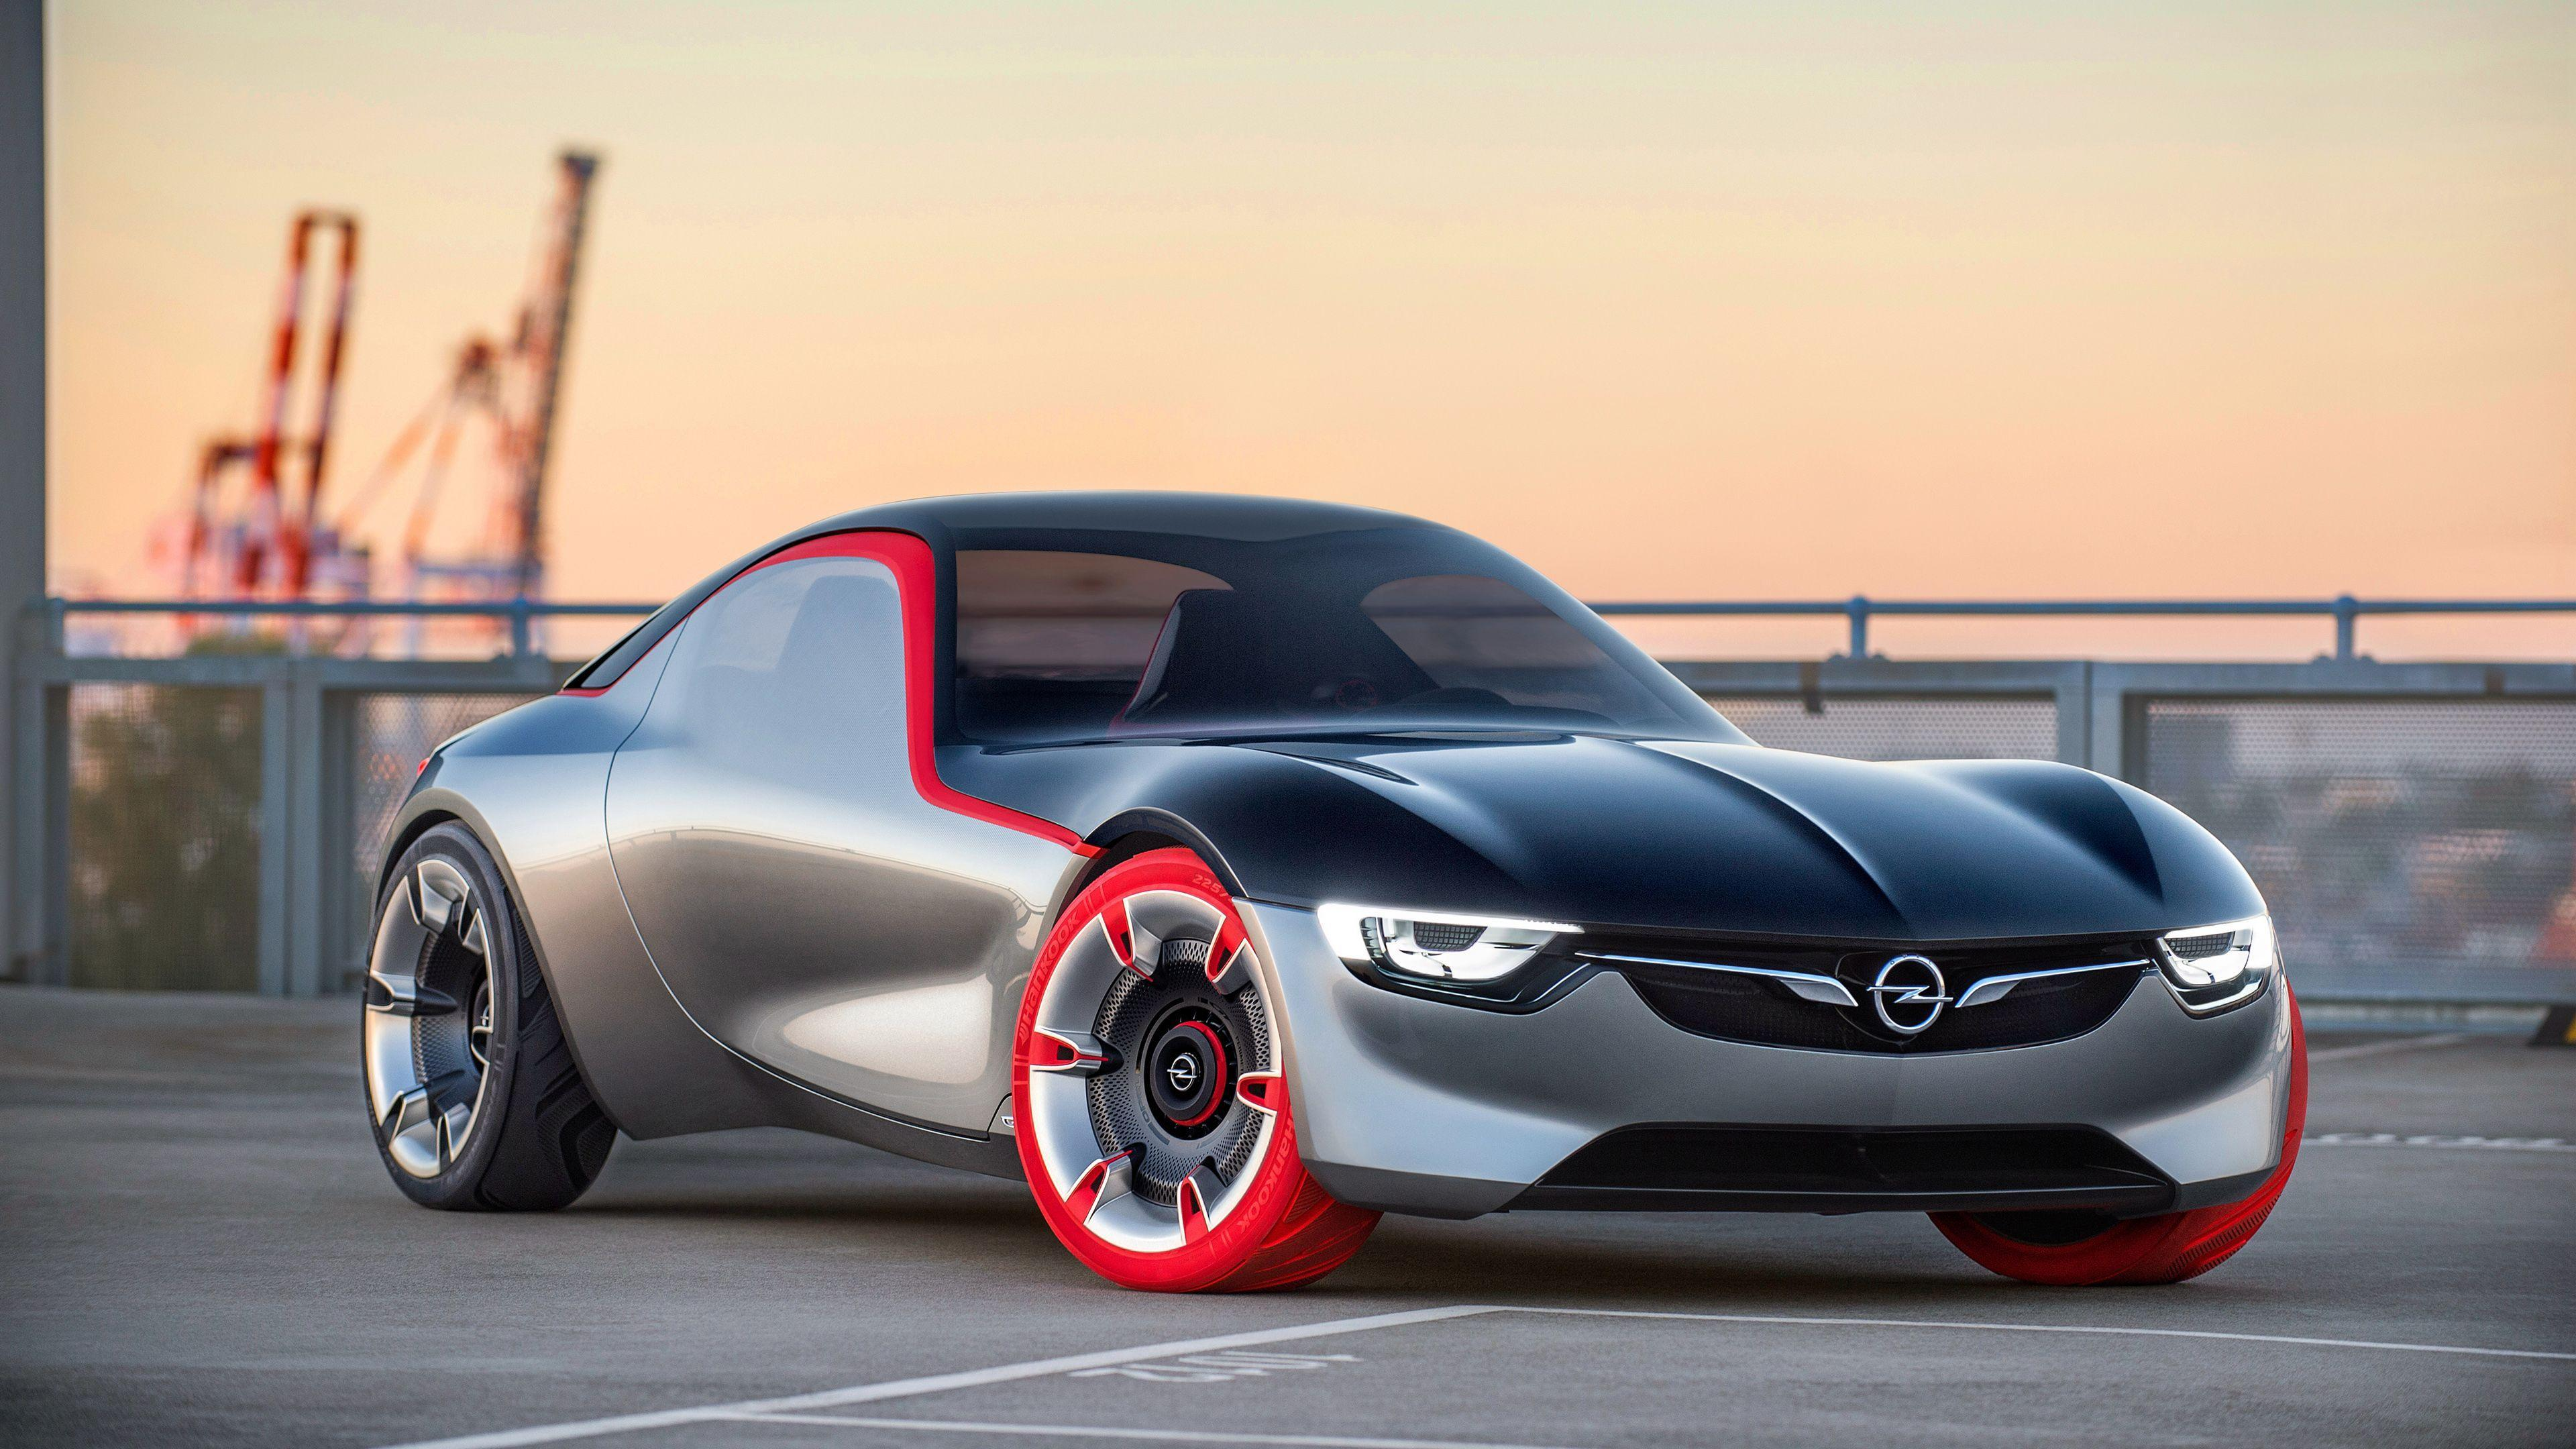 2016 Opel GT ConceptRelated Car Wallpapers wallpaper,concept HD